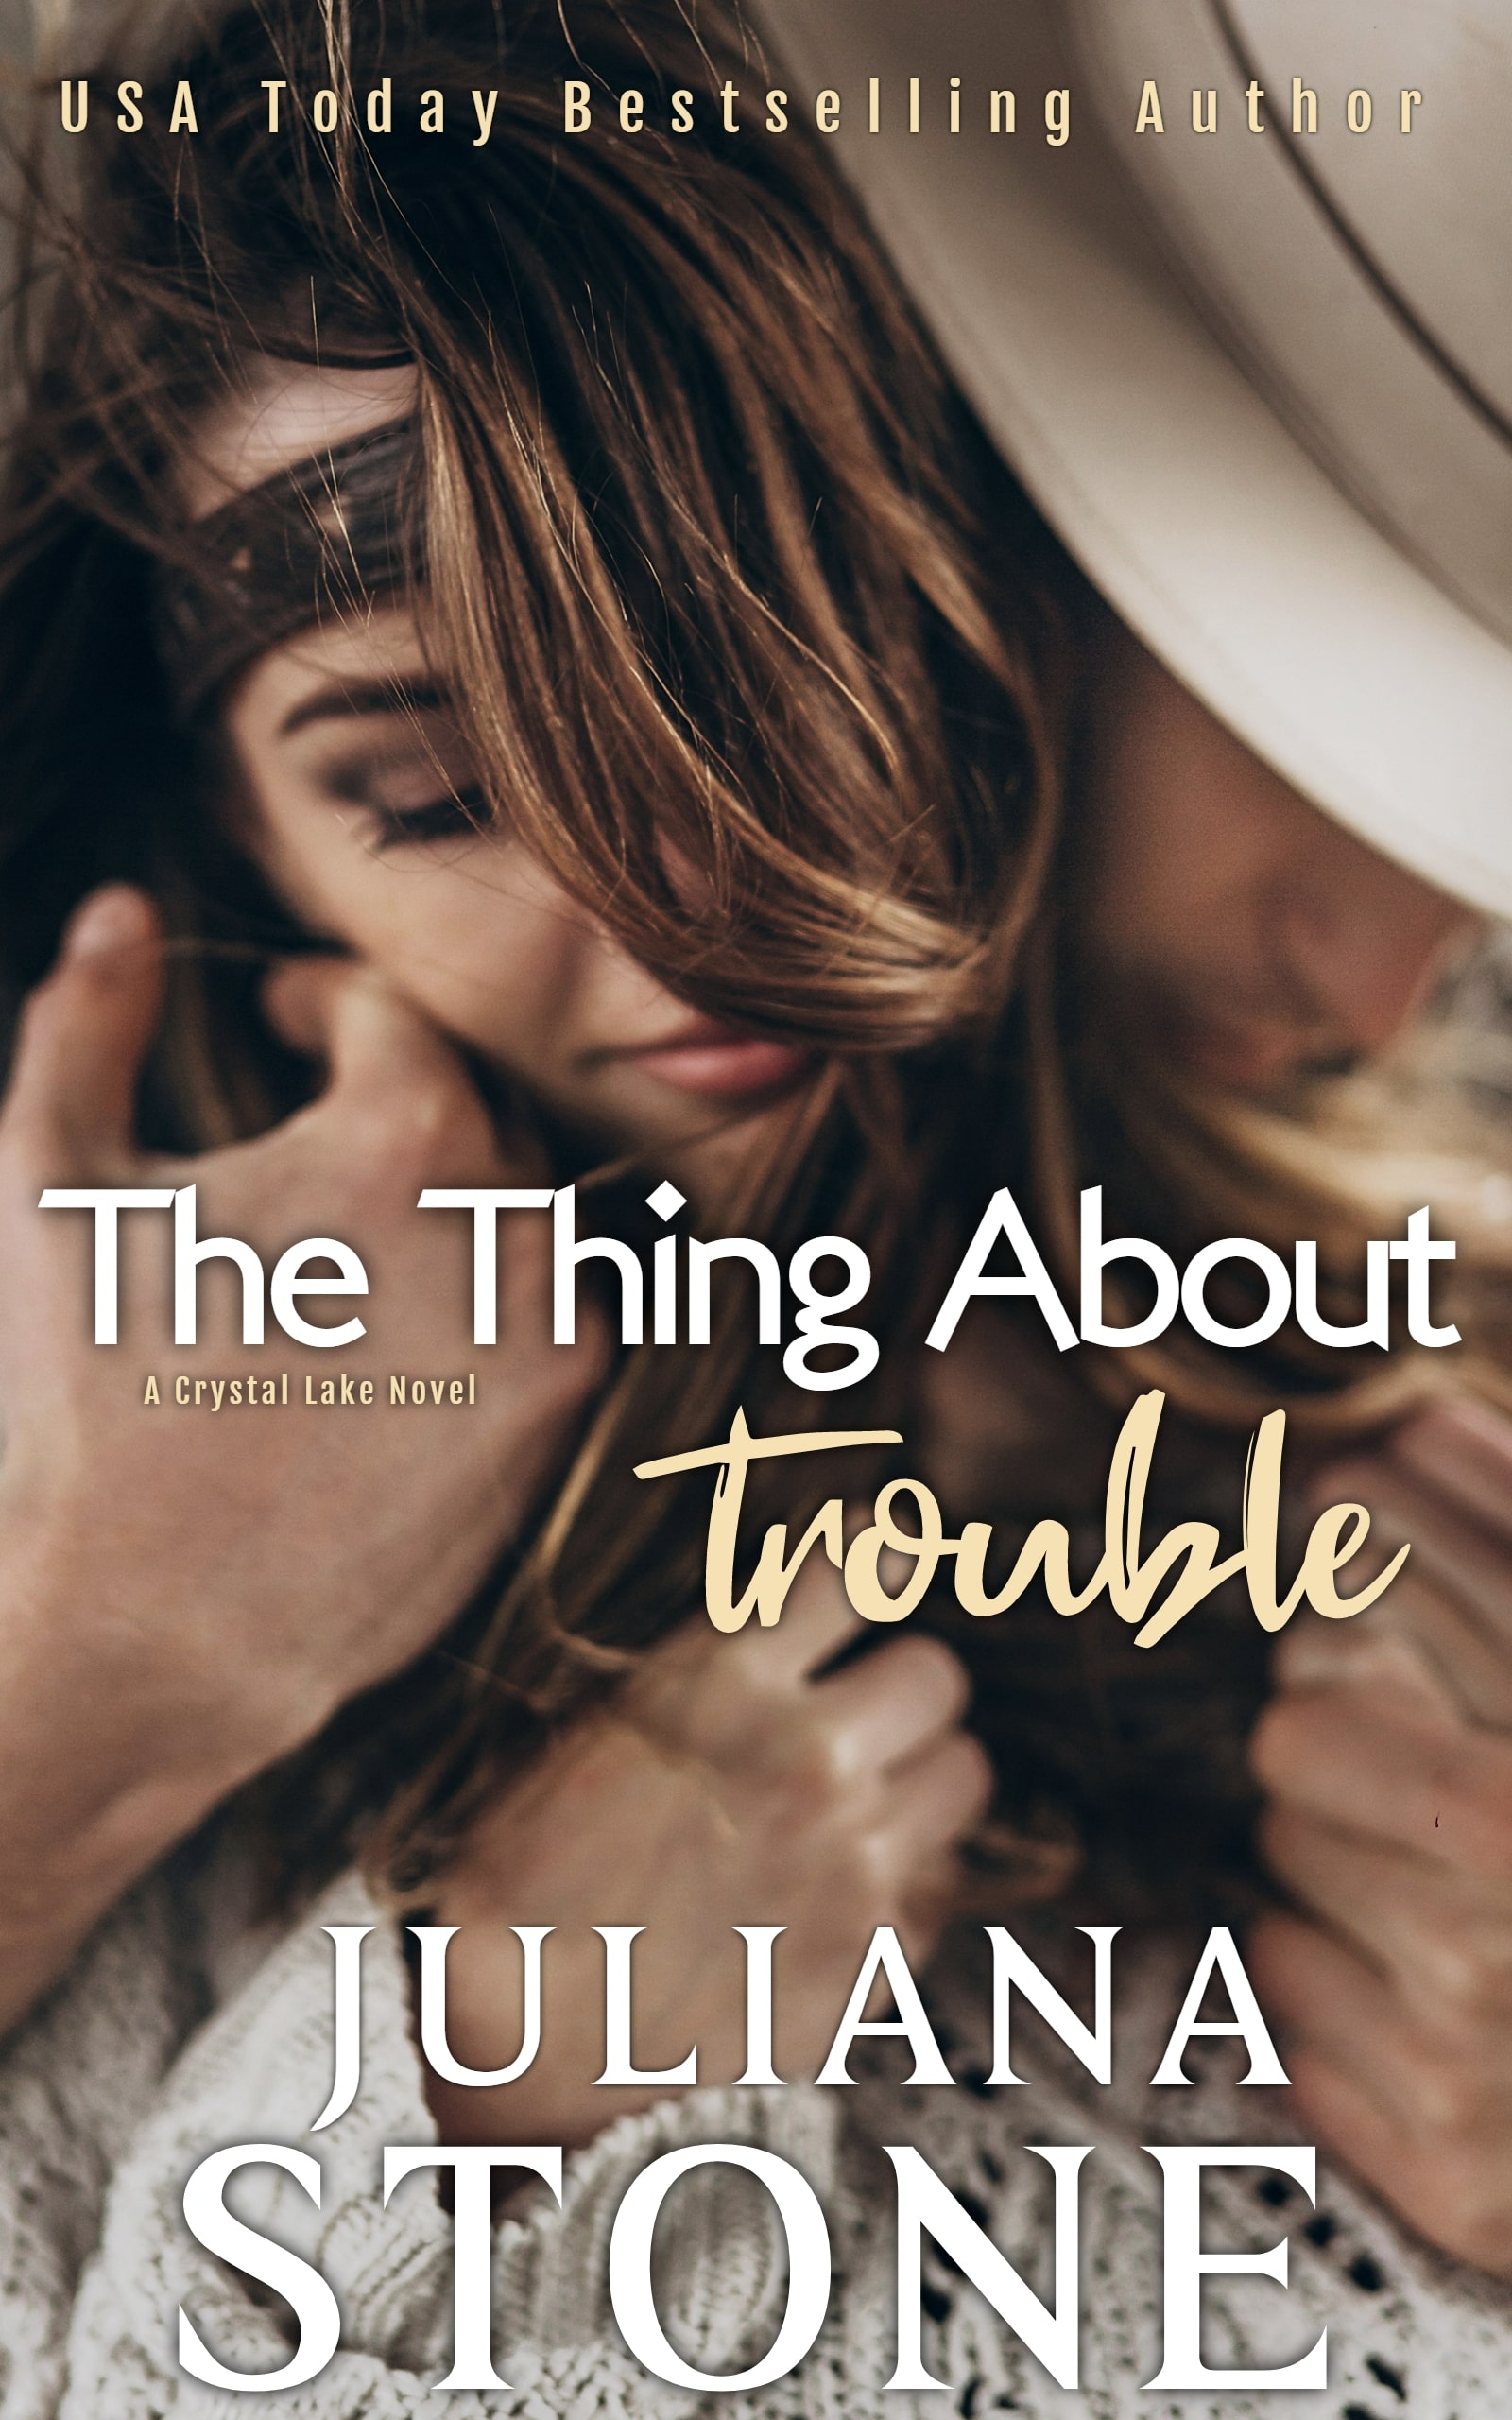 The Thing About Trouble by Juliana Stone